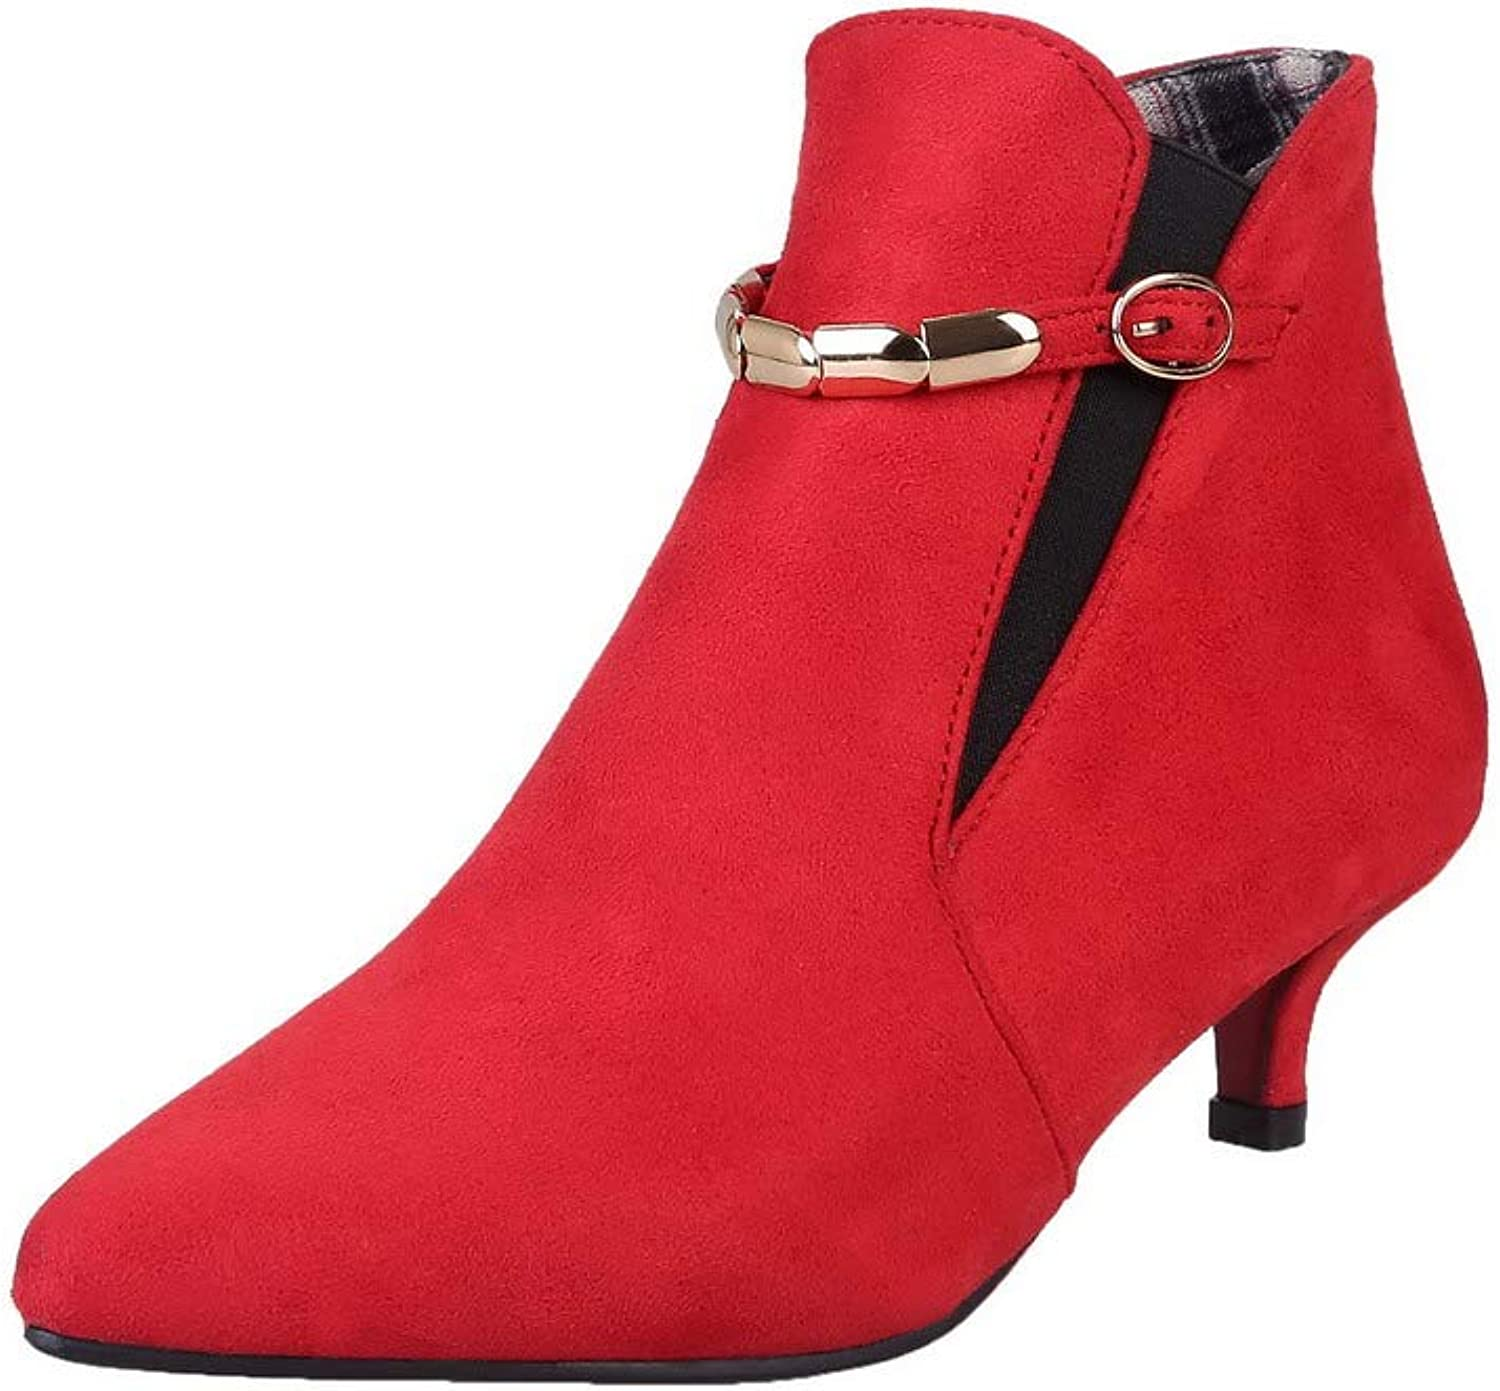 WeiPoot Women's Frosted Pointed-Toe Solid Low-Top Low-Heels Boots, EGHXH125455